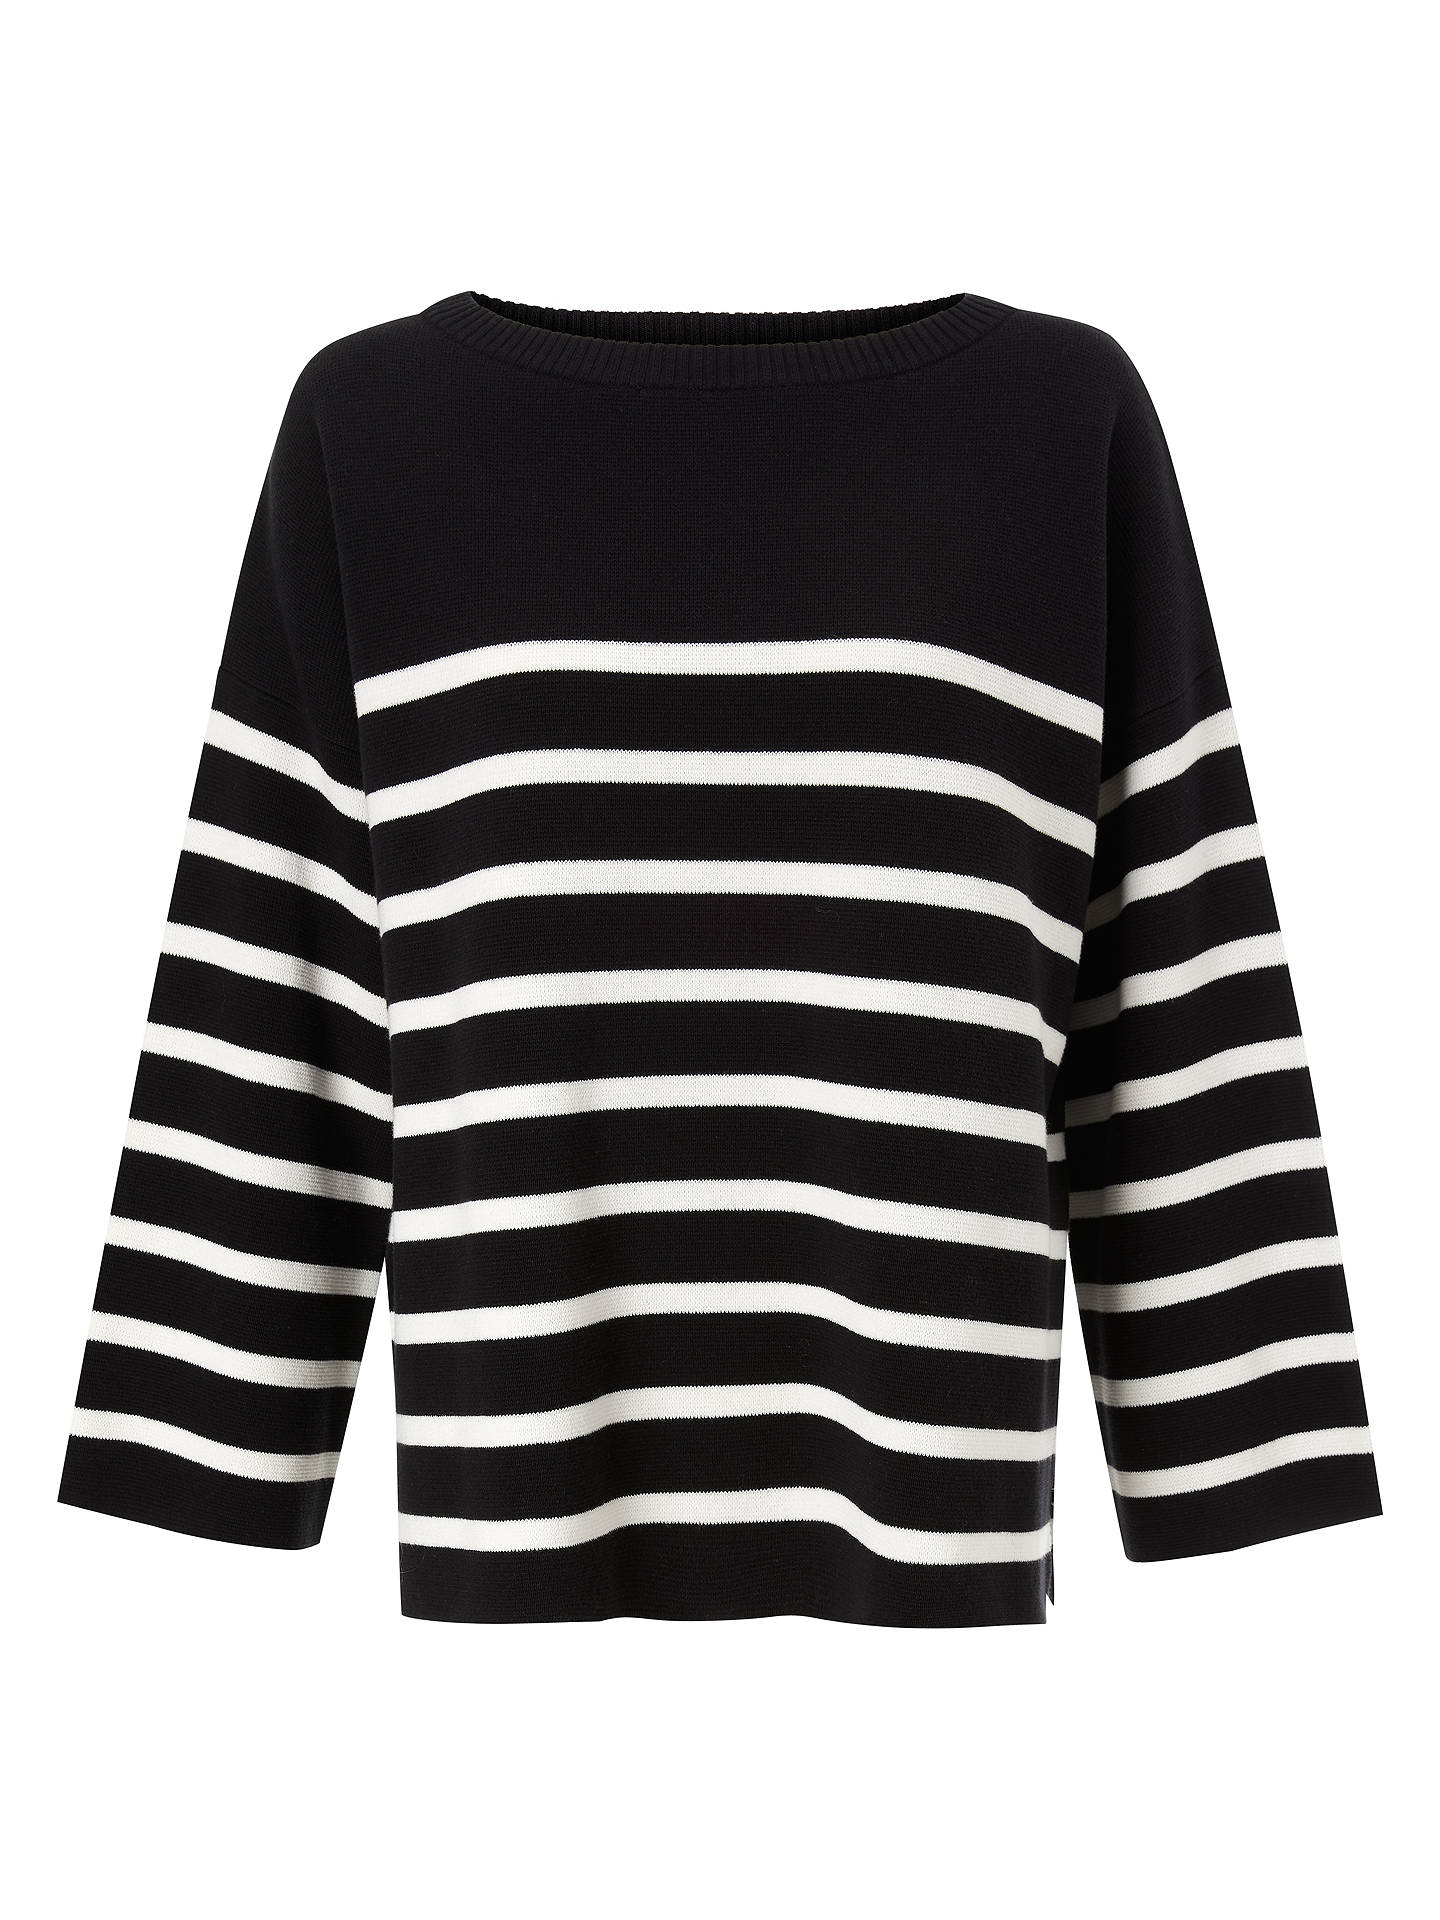 BuyKin Milano Cotton Boat Neck Jumper, Black, S Online at johnlewis.com